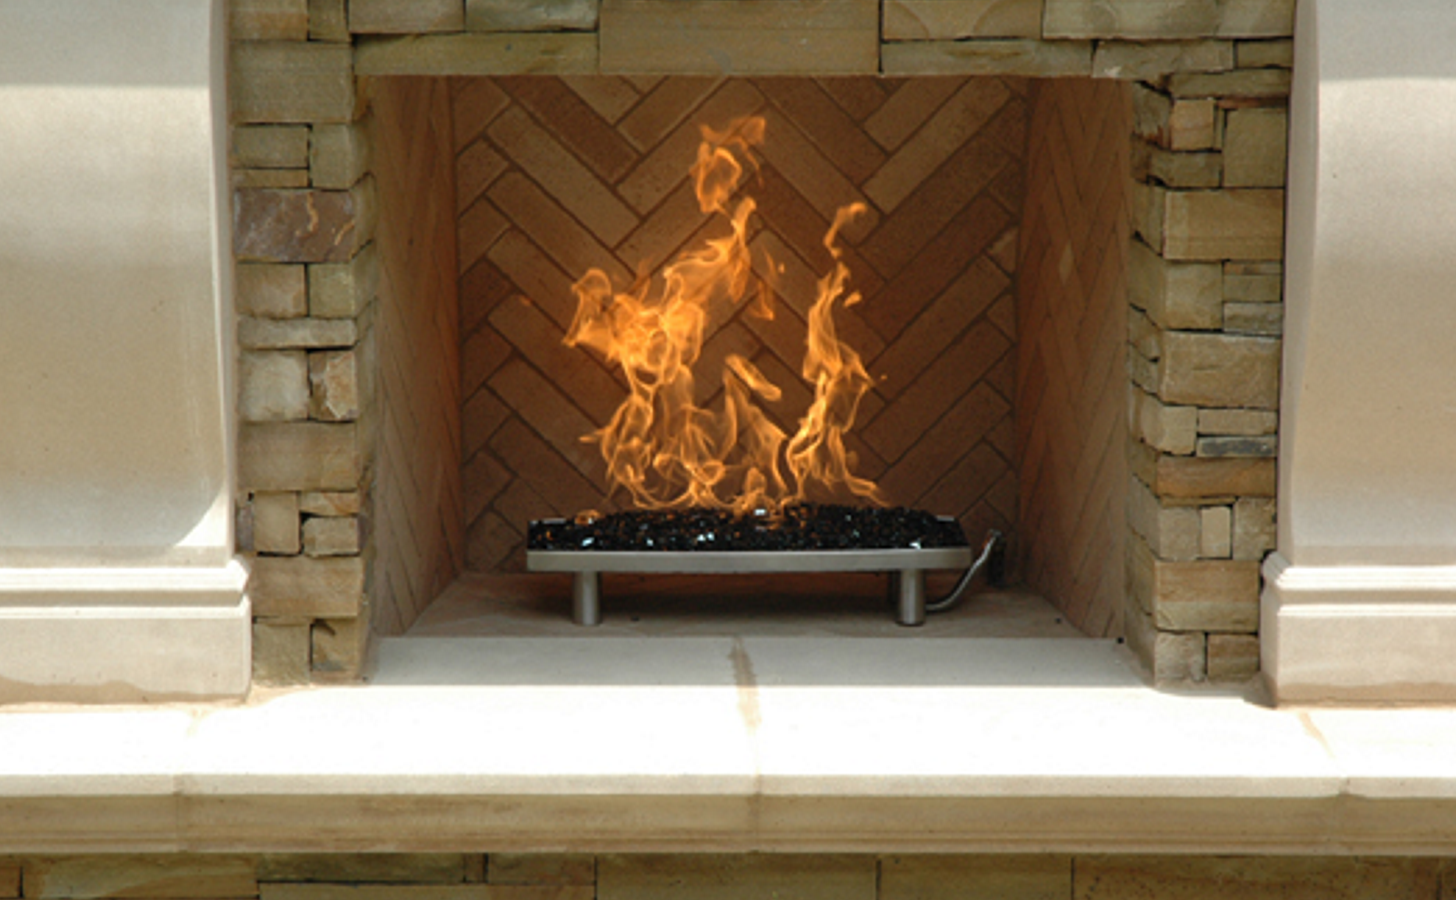 Outdoor Fireplace With Fire Glass Pan Burner 22 Png 1 456 900 Pixels